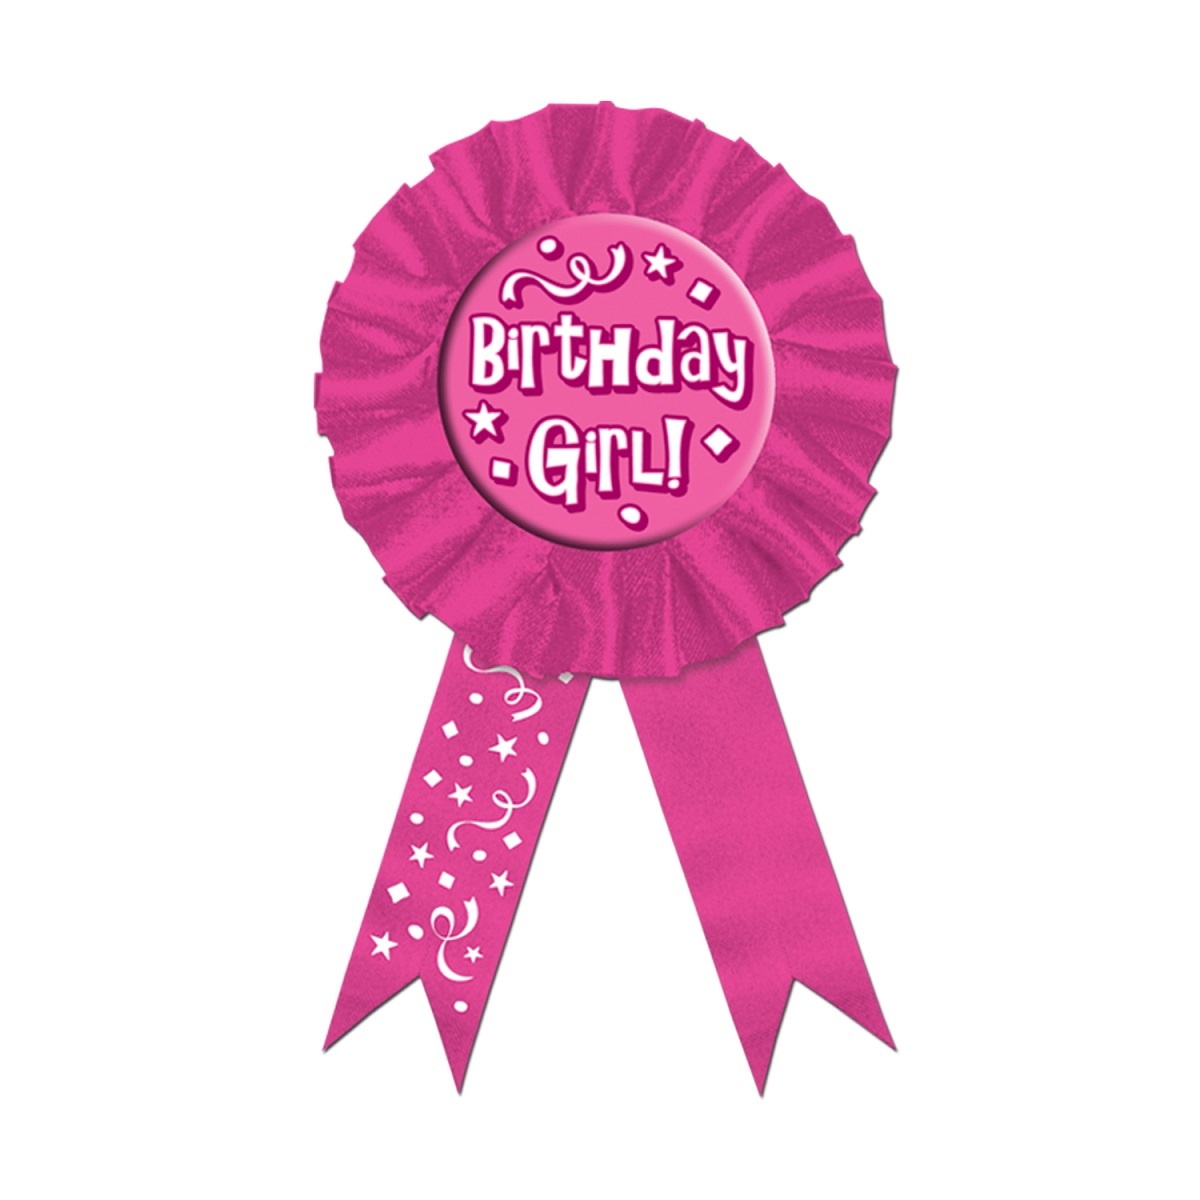 Pack of 6 ''Birthday Girl!'' Award Ribbons 3.75'' x 6.5''